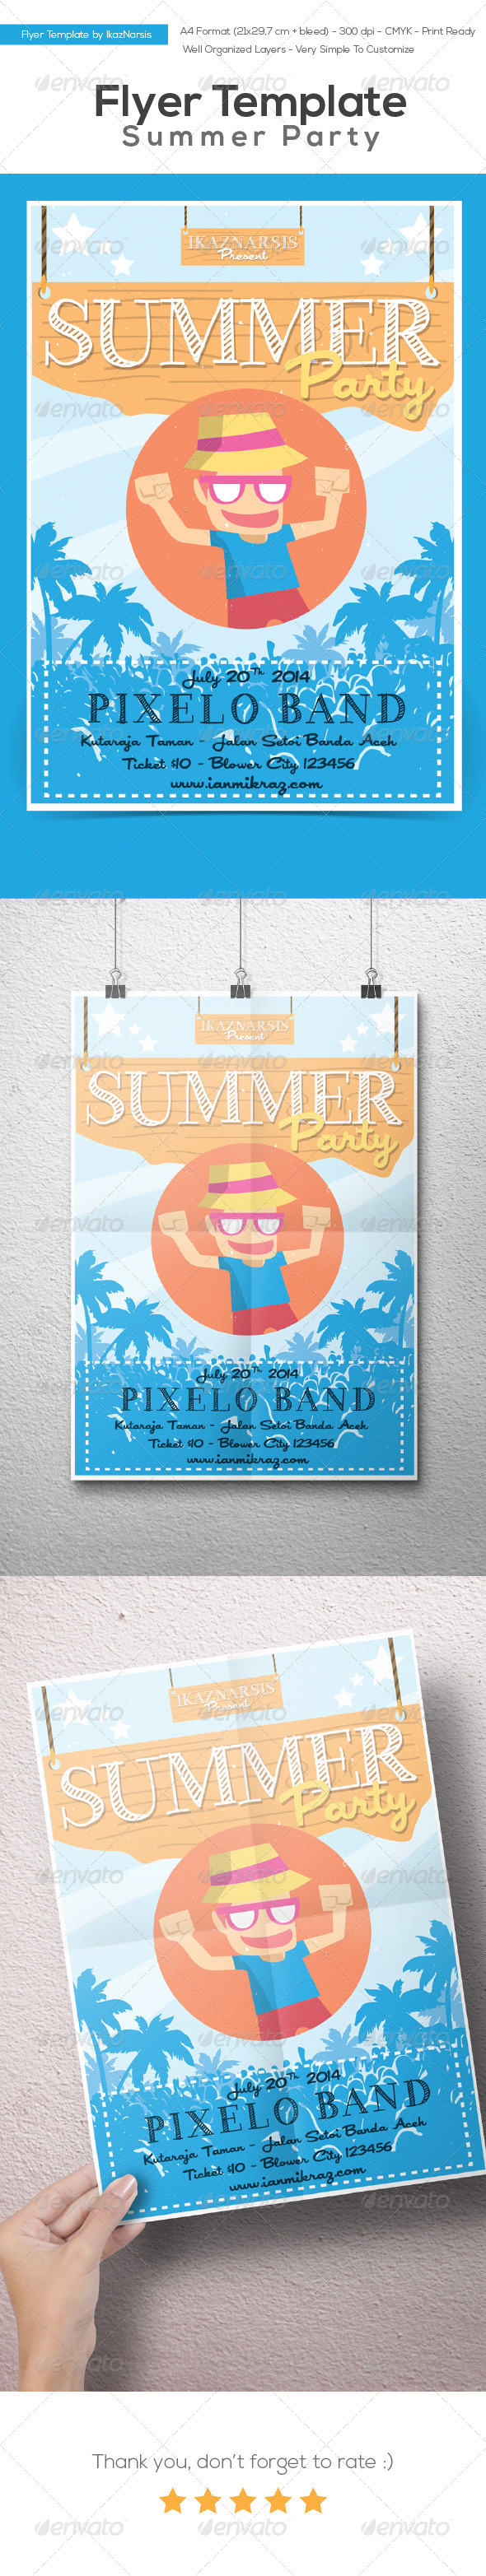 Summer Party Flyer Template - Holidays Events